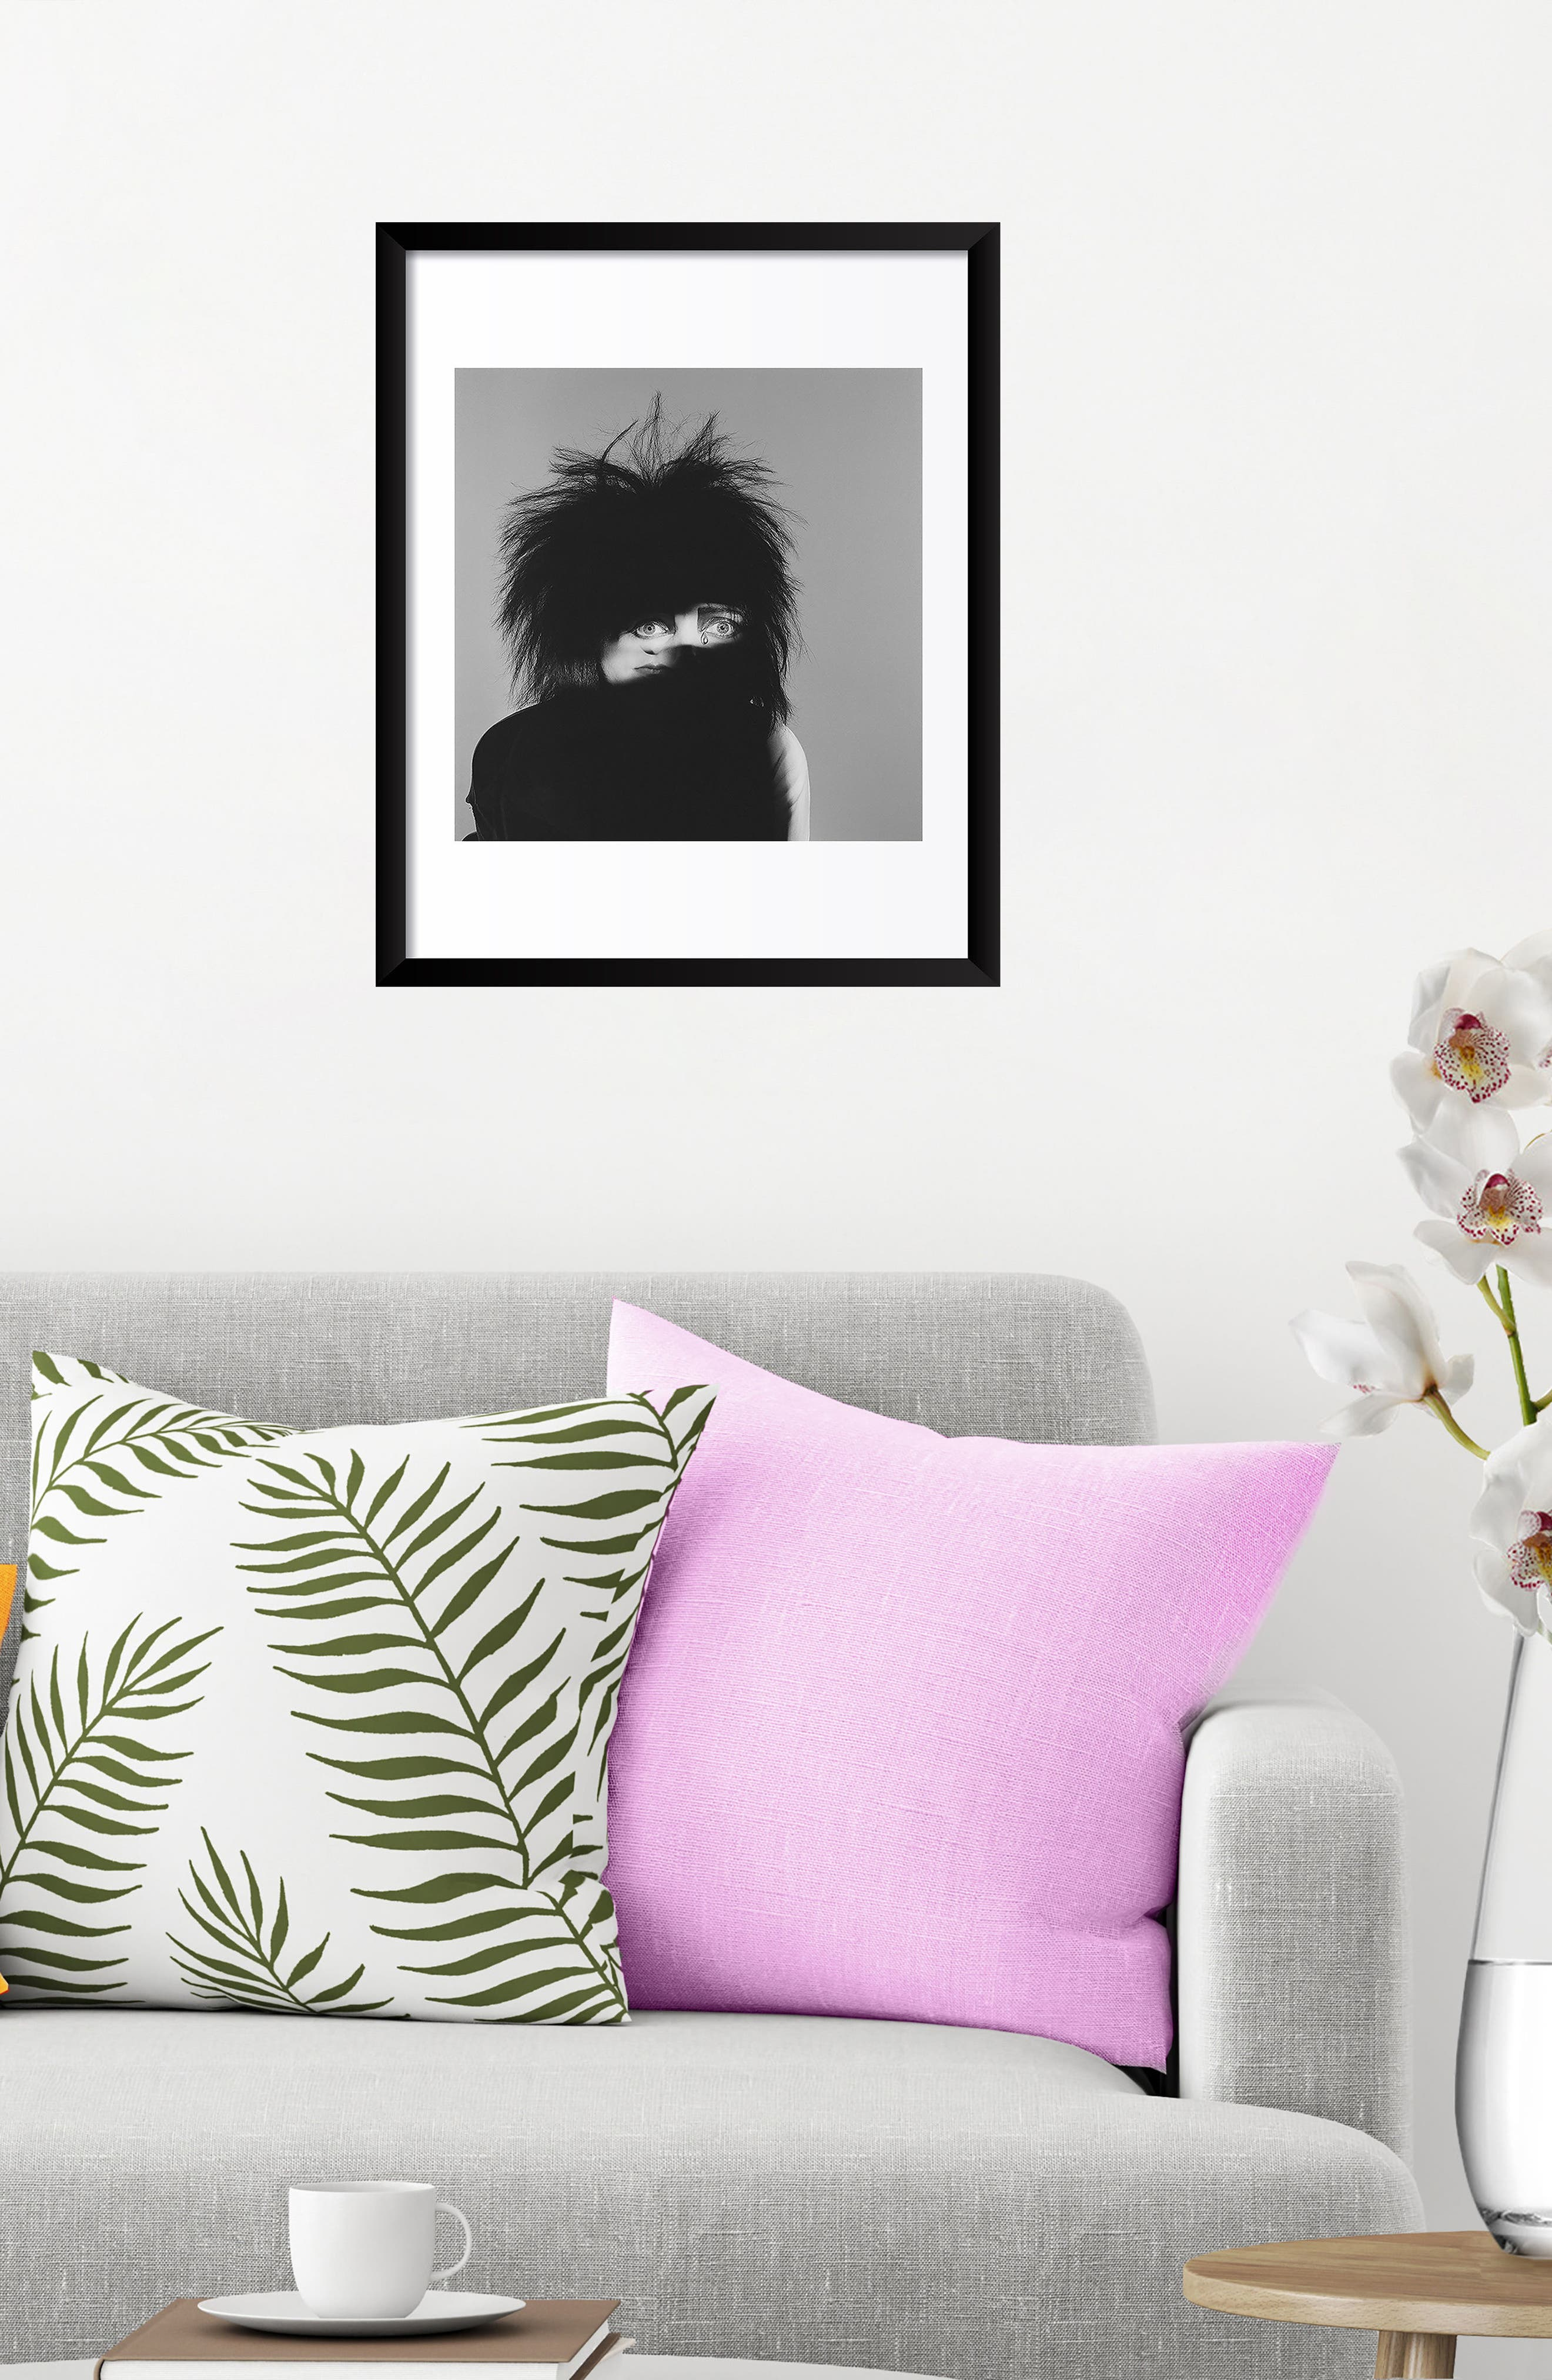 Siouxsie Sioux Fine Art Print,                             Alternate thumbnail 3, color,                             001